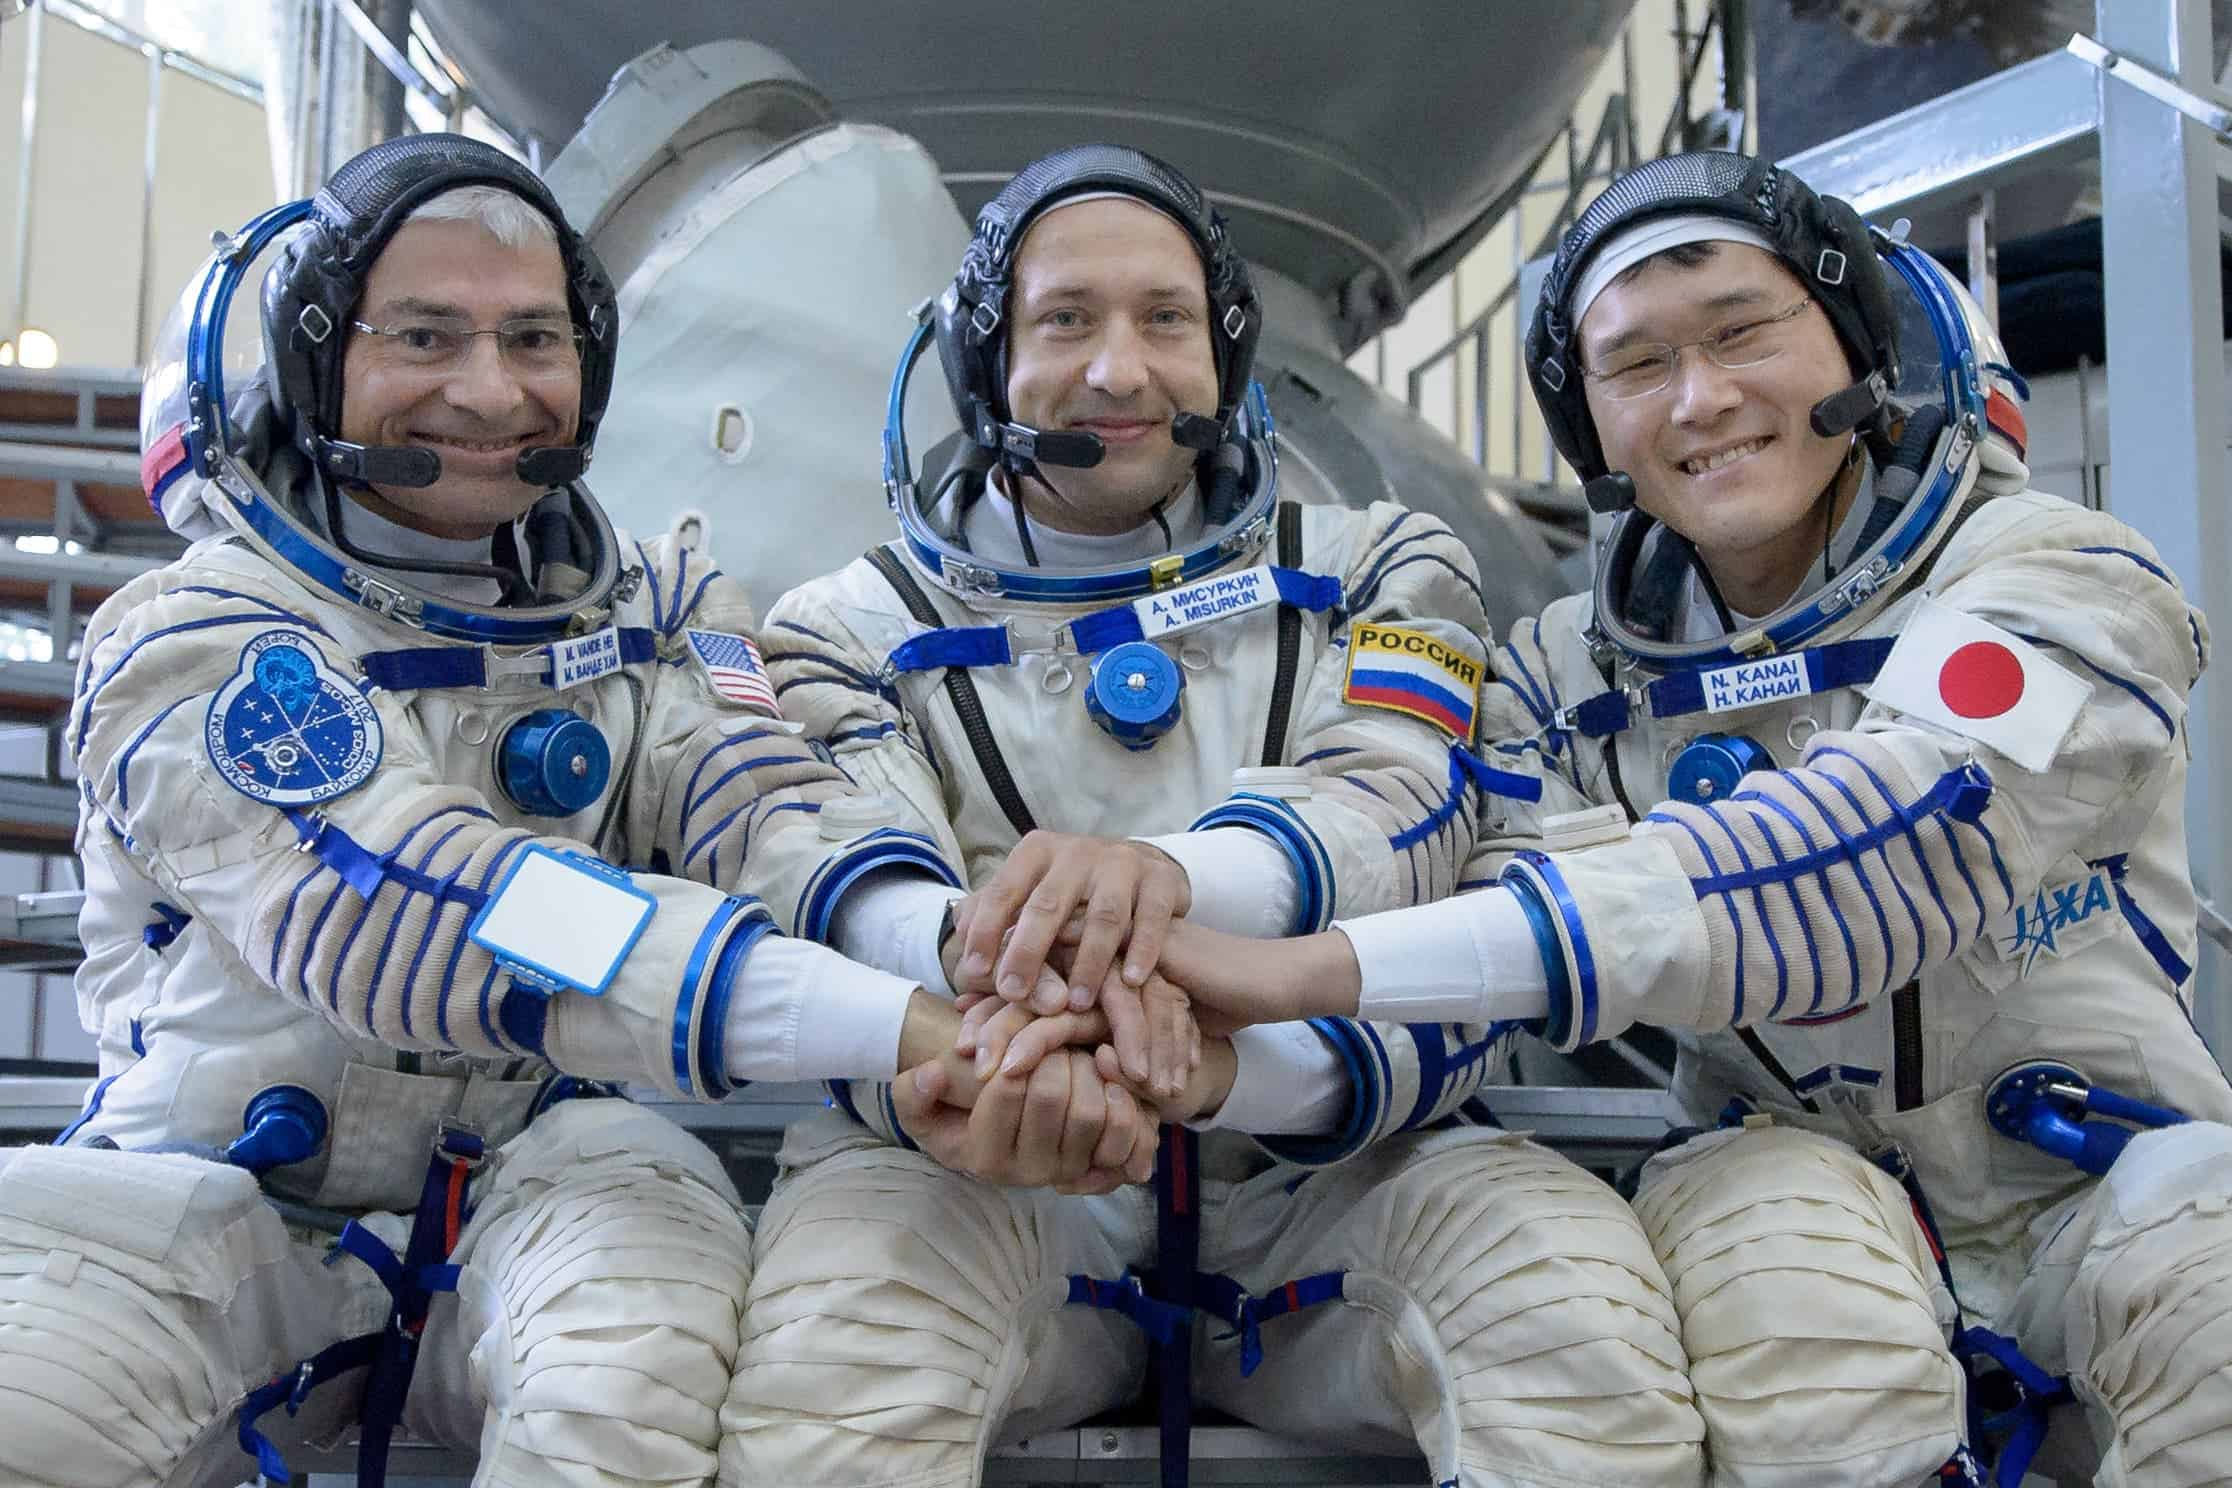 astronauts after being in space - photo #7